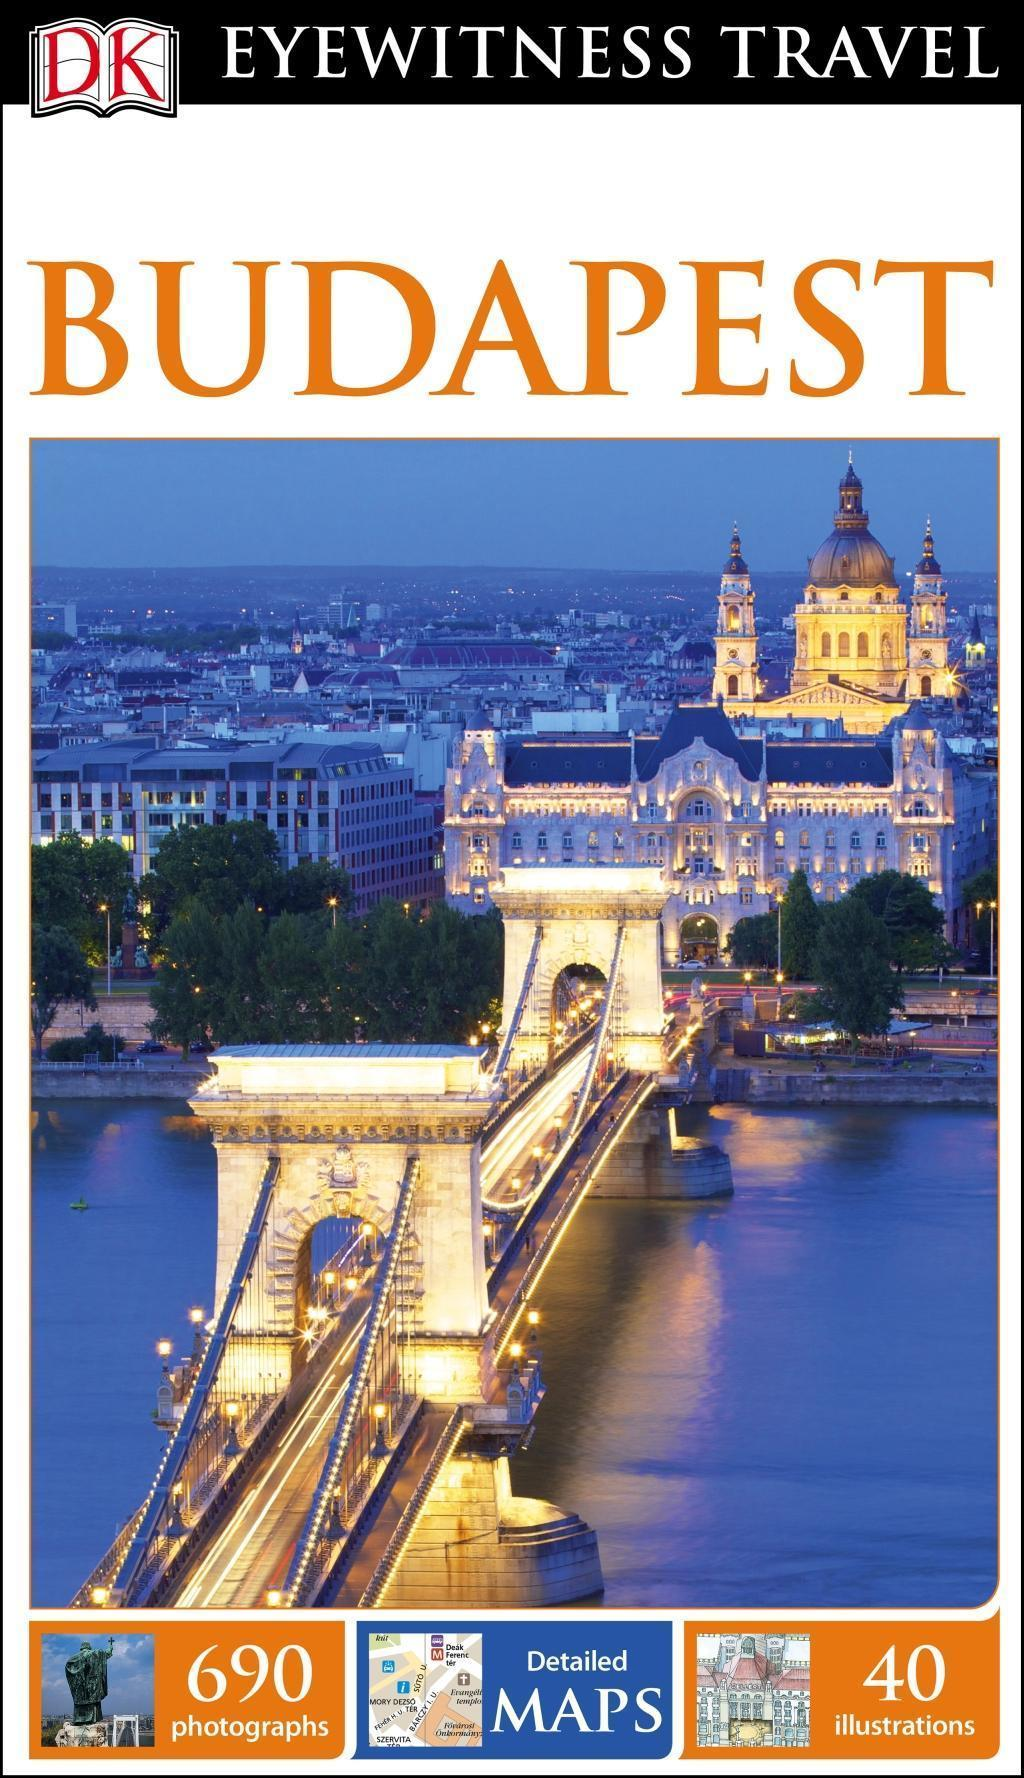 DK Eyewitness Travel Guide: Budapest